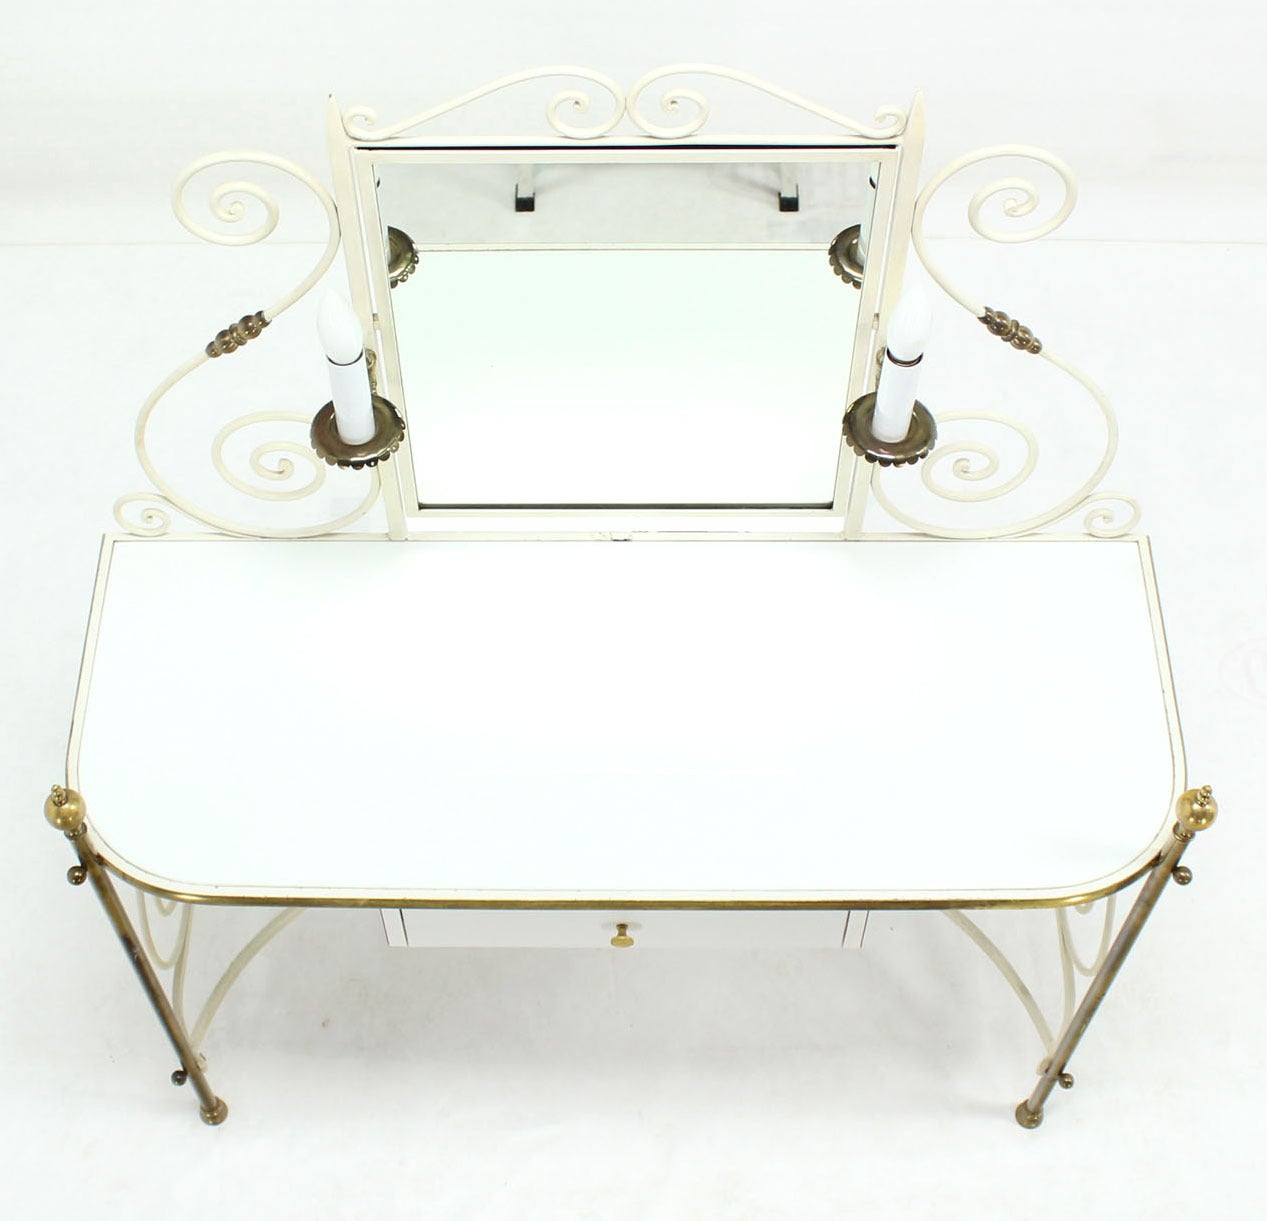 Decorative Vanity Dressing Table Milk Glass Top Metal Scrolls Brass Hardware In Excellent Condition For Sale In Blairstown, NJ